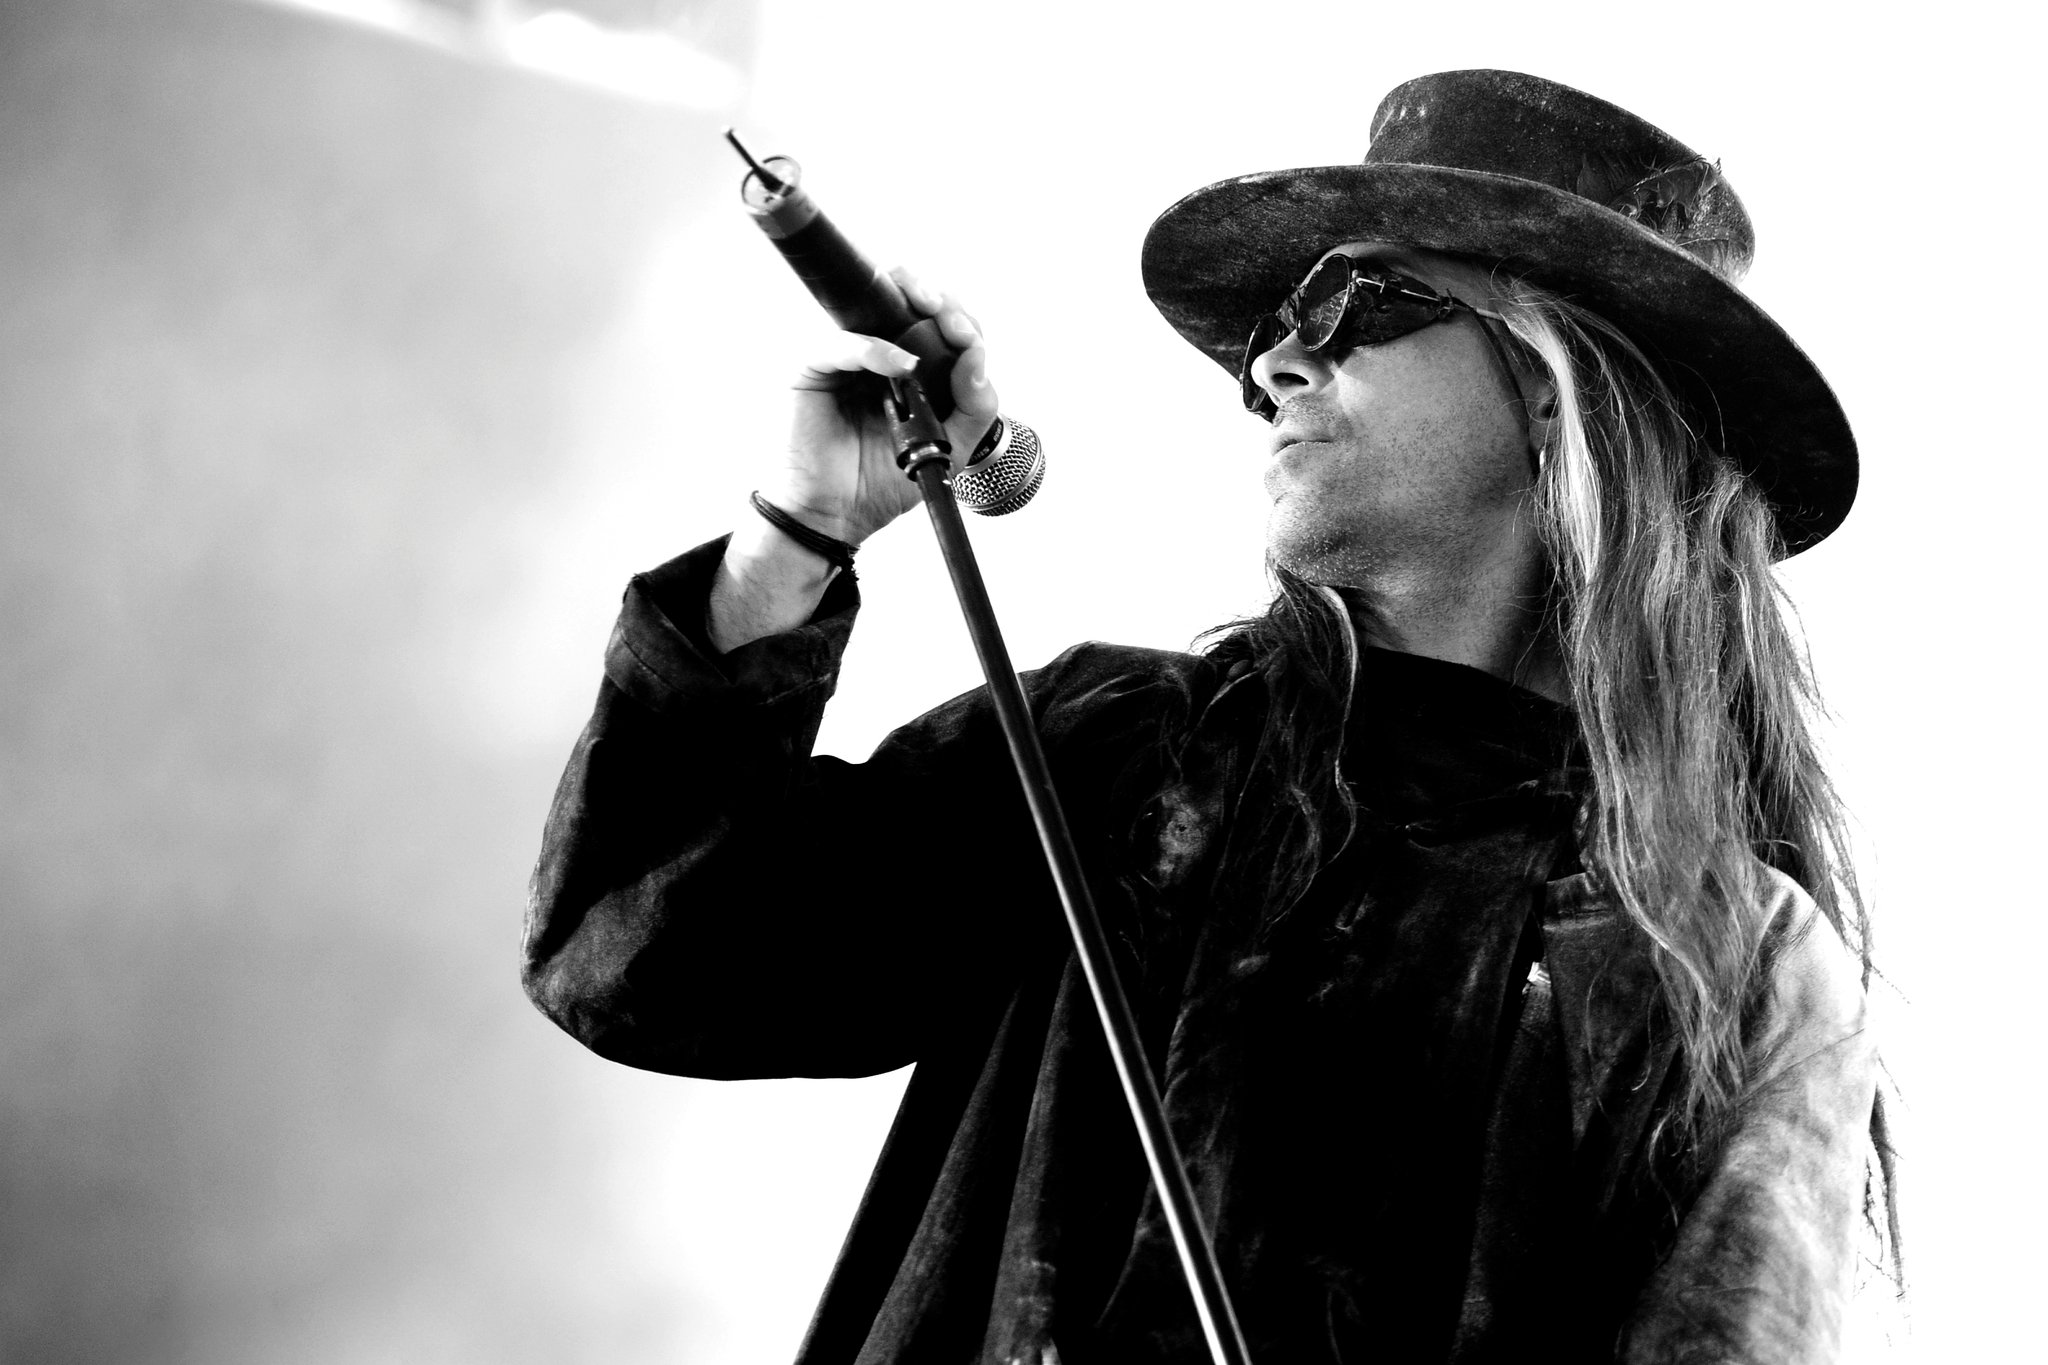 Fields of the Nephilim document 2008 London concerts with 'Ceremonies' CD/DVD package